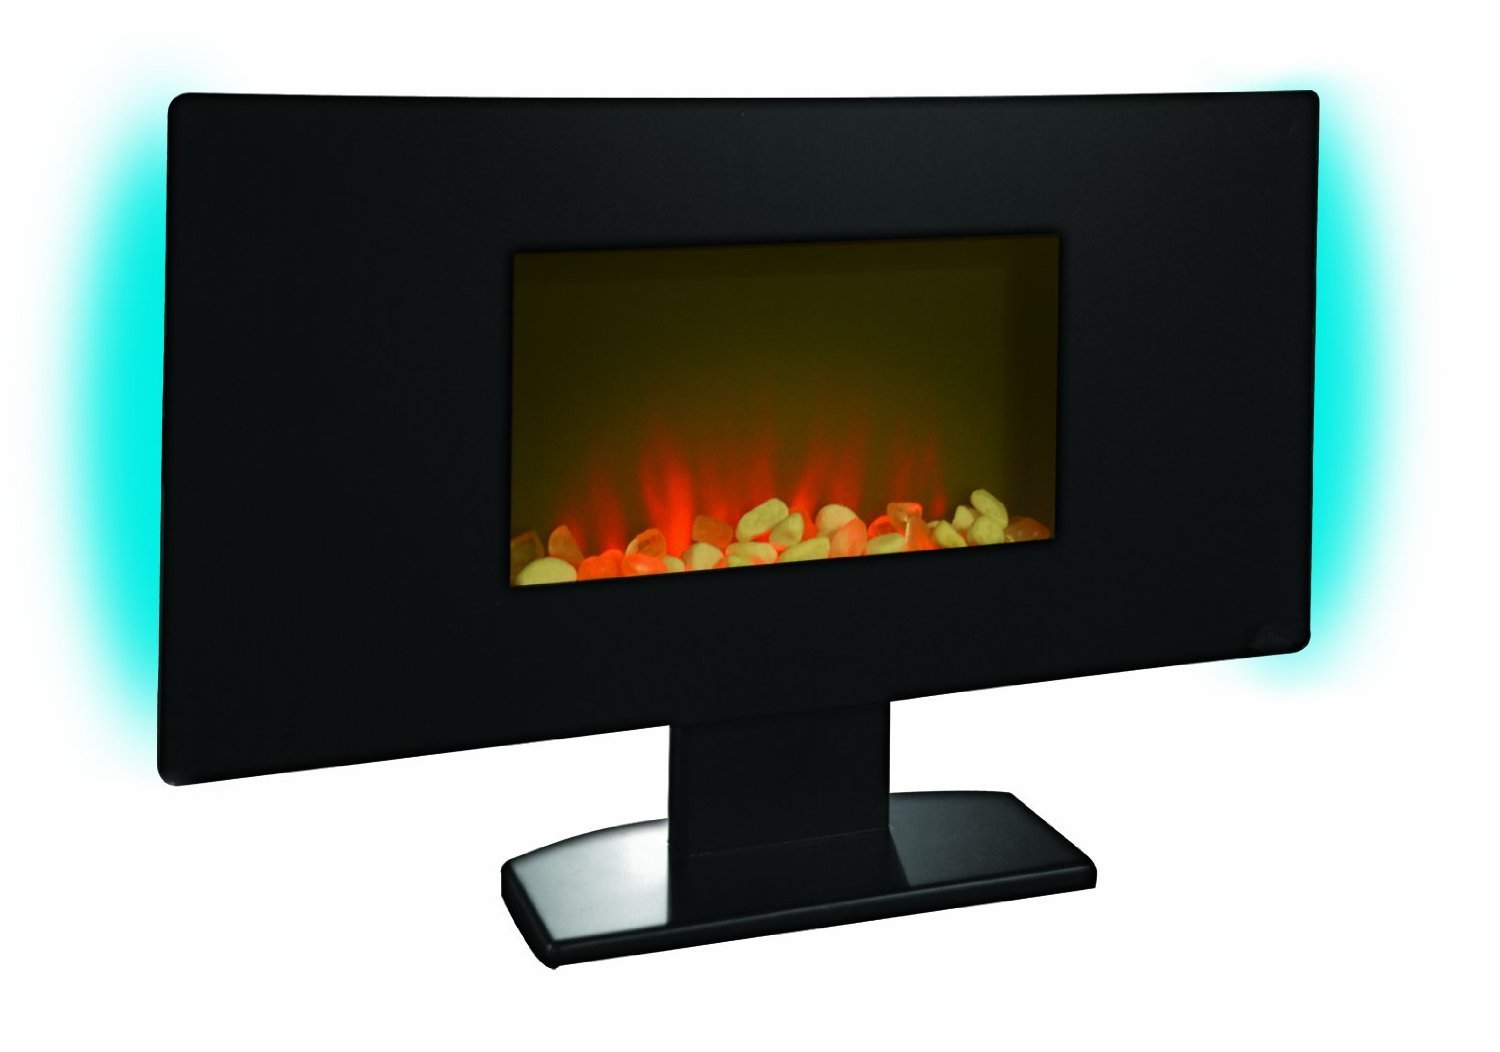 Amazon.com: Estate Design Electric Flat Panel Fireplace Heater: Home & Kitchen